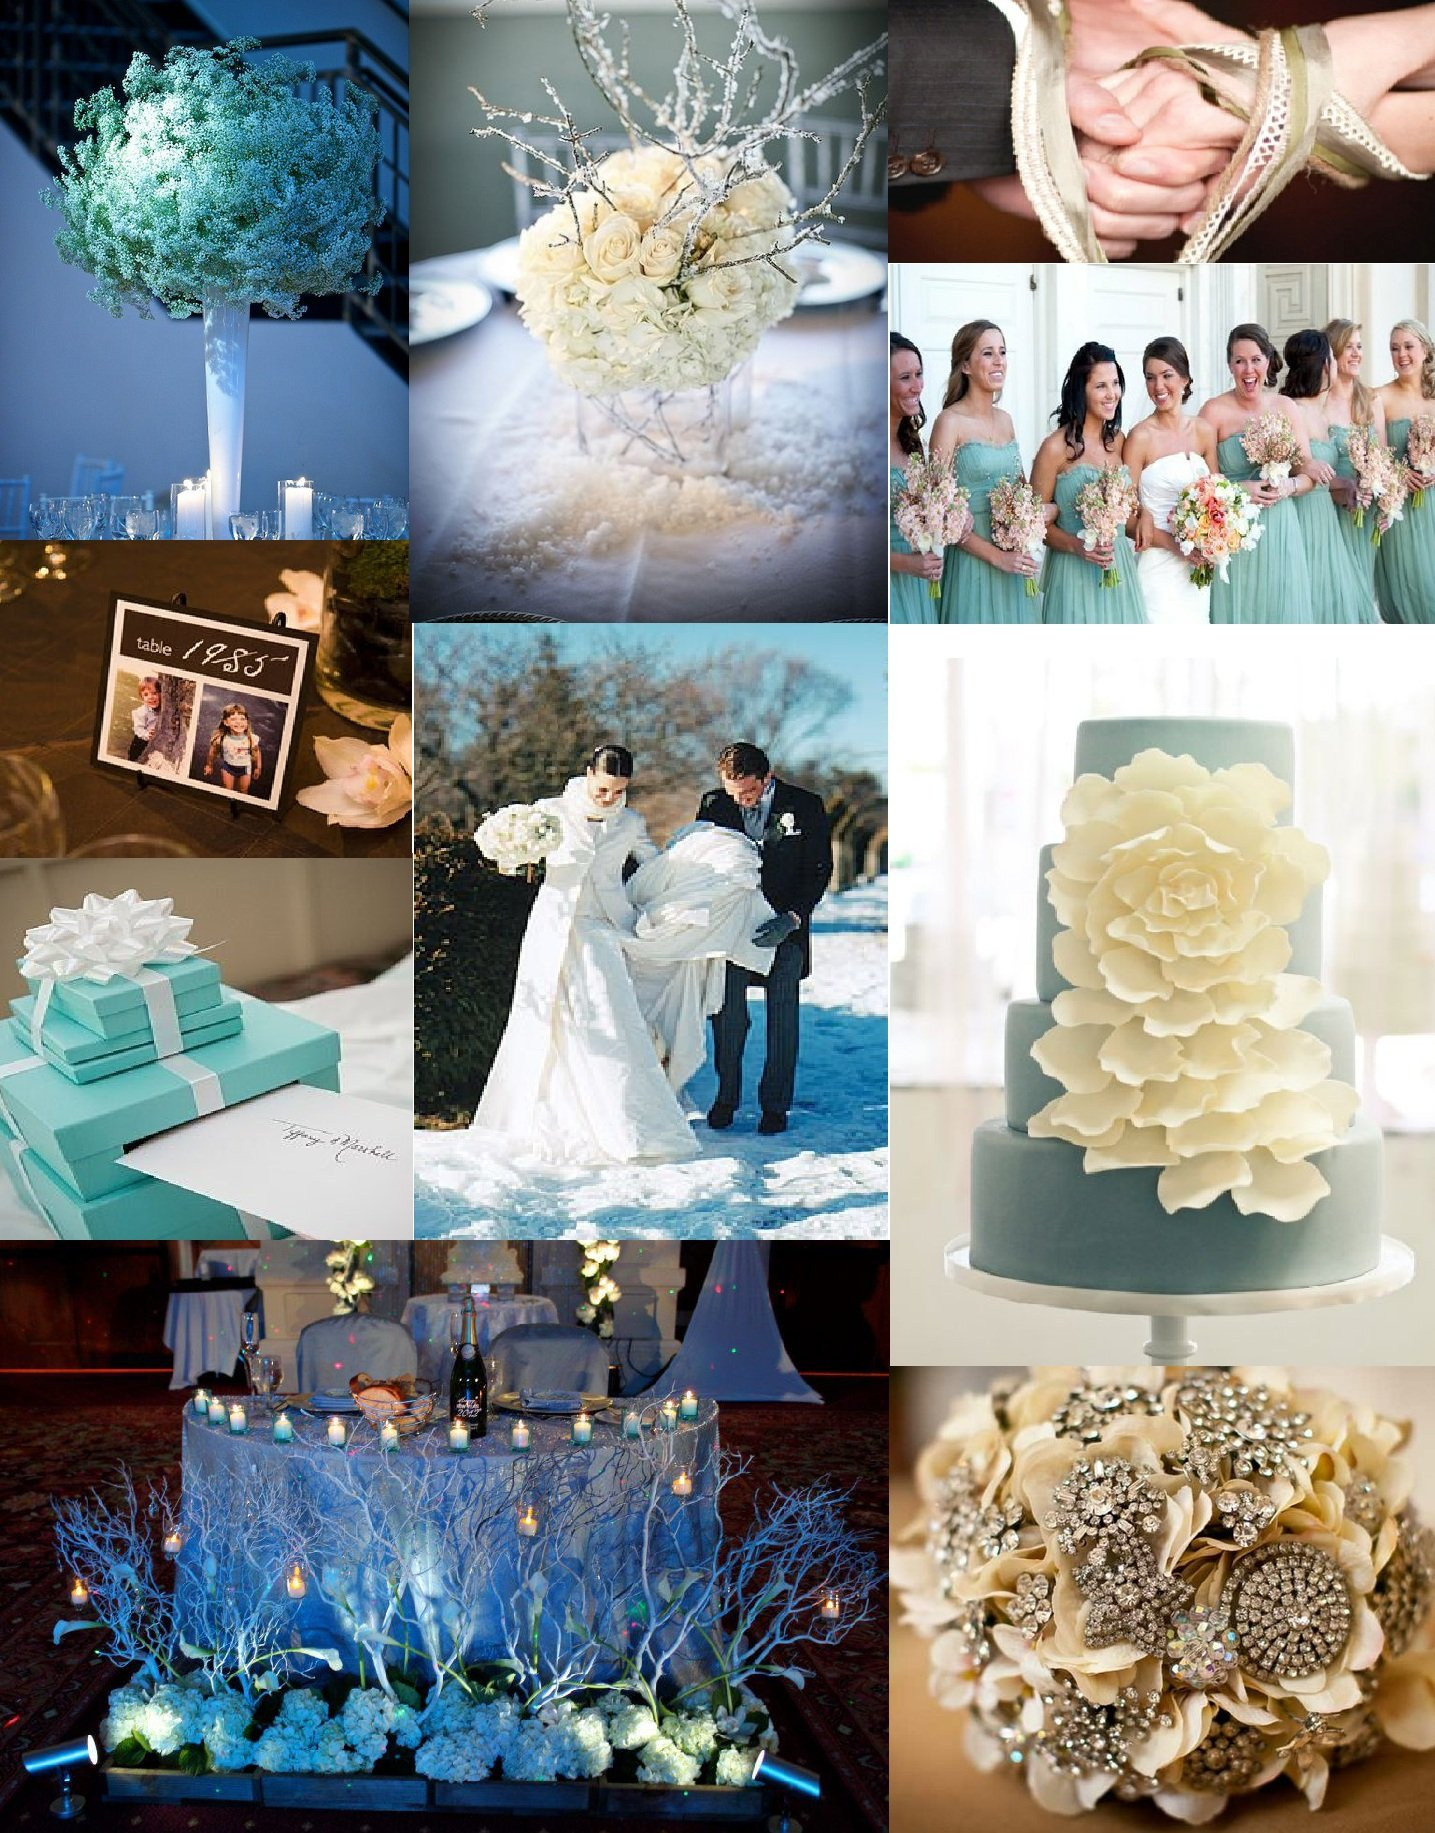 Winter white and tiffany blue wedding inspiration washington dc photo board 1 1 tall white flower arrangements savethedateevents 2 bride and bridesmaids stylemepretty 3 place card table mightylinksfo